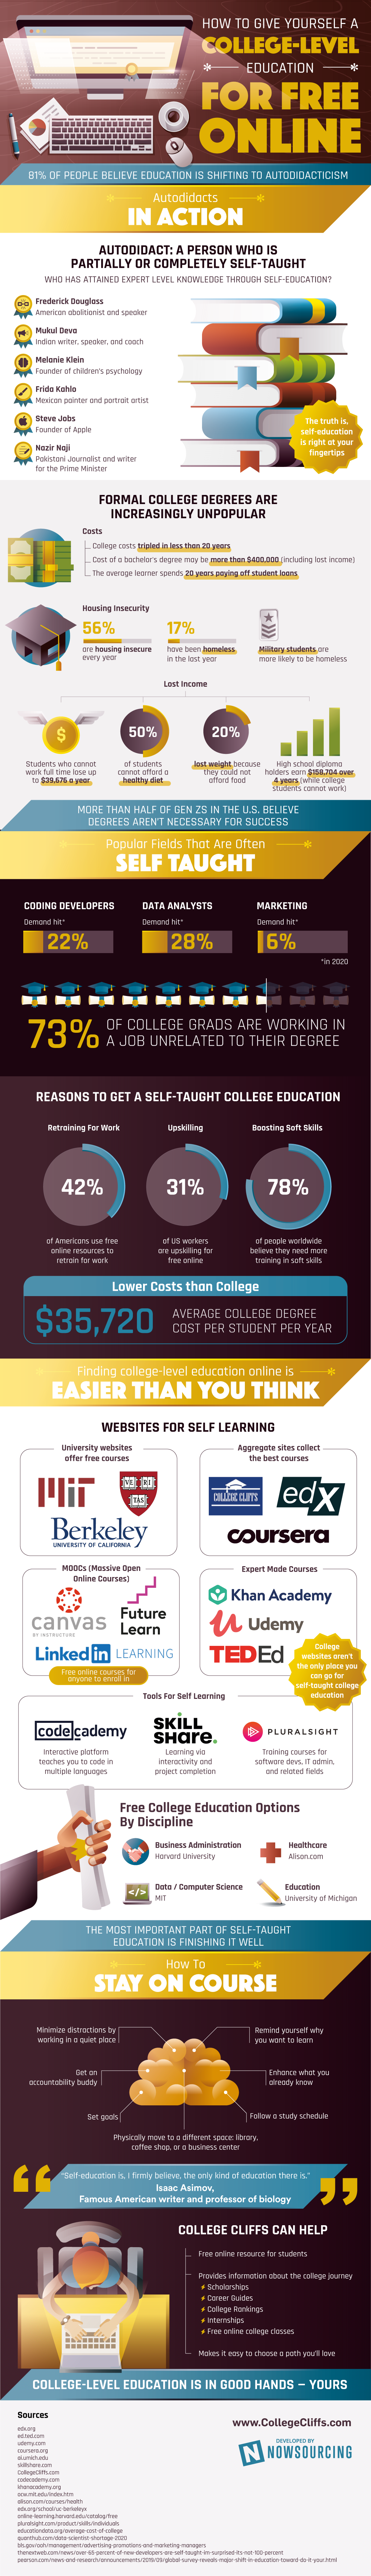 How To Give Yourself A College-Level Education For Free Online